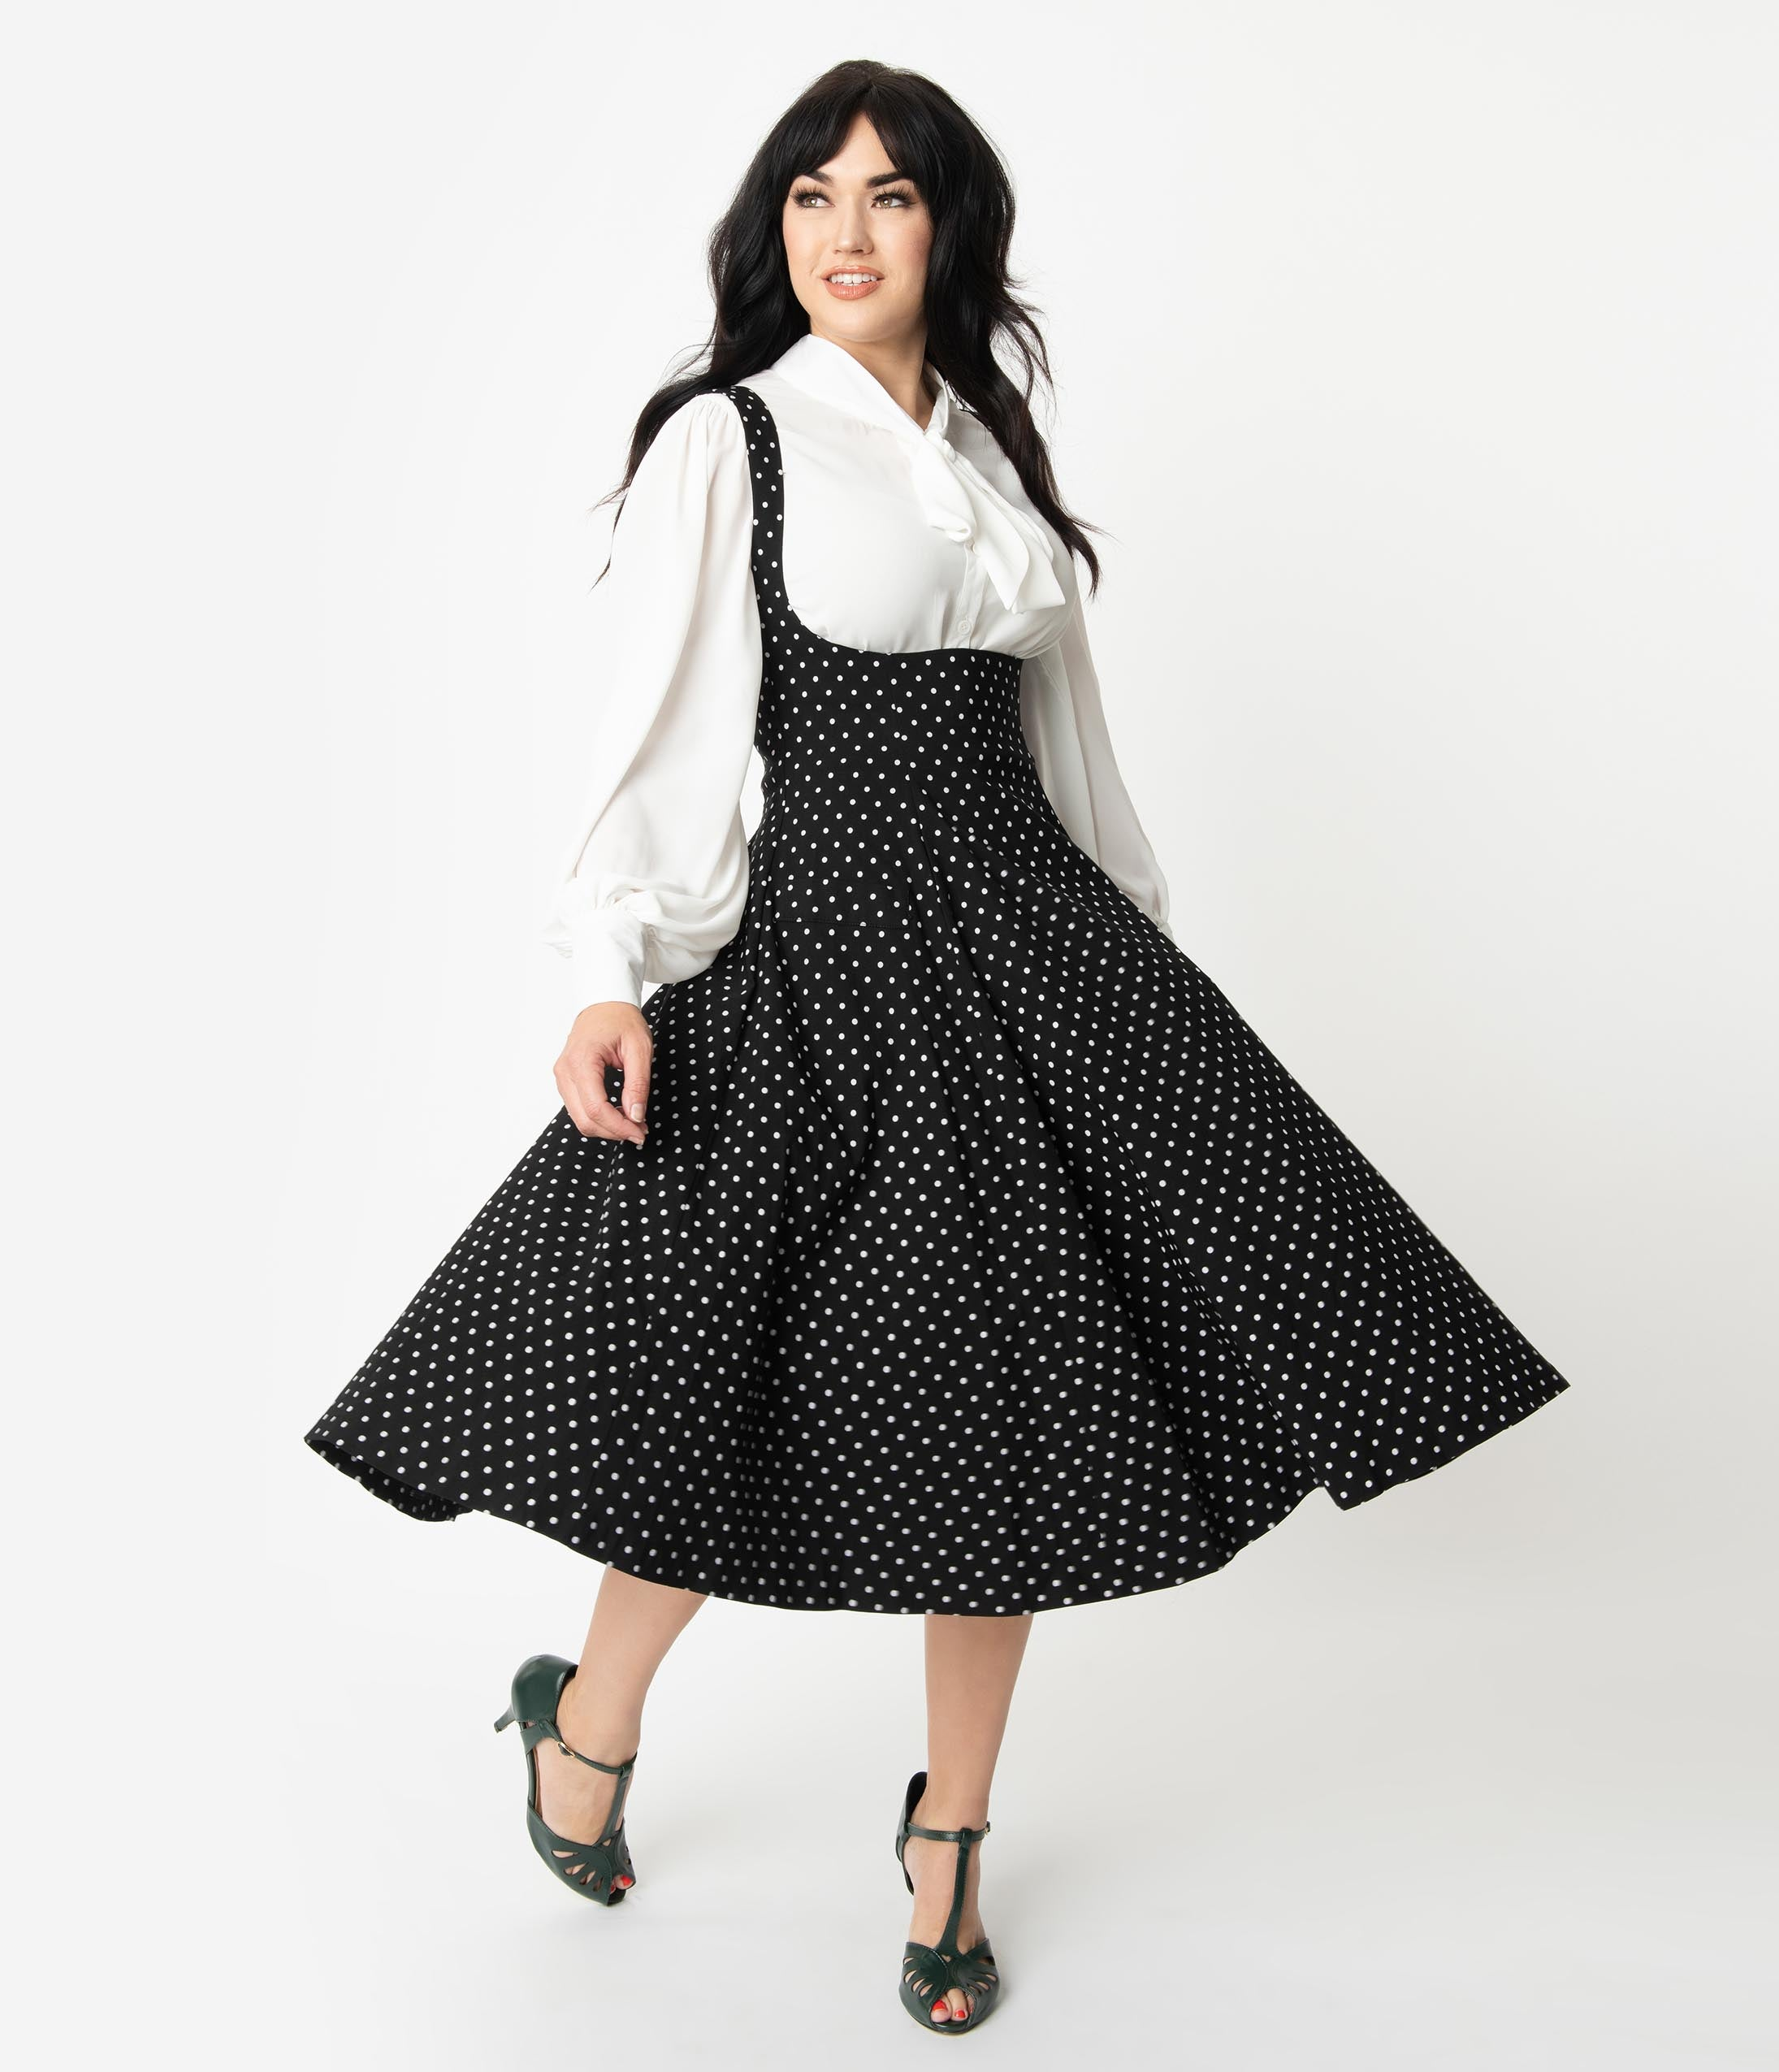 50s Skirt Styles | Poodle Skirts, Circle Skirts, Pencil Skirts 1950s Unique Vintage 1950S Black  White Pin Dot Amma Suspender Swing Skirt $88.00 AT vintagedancer.com